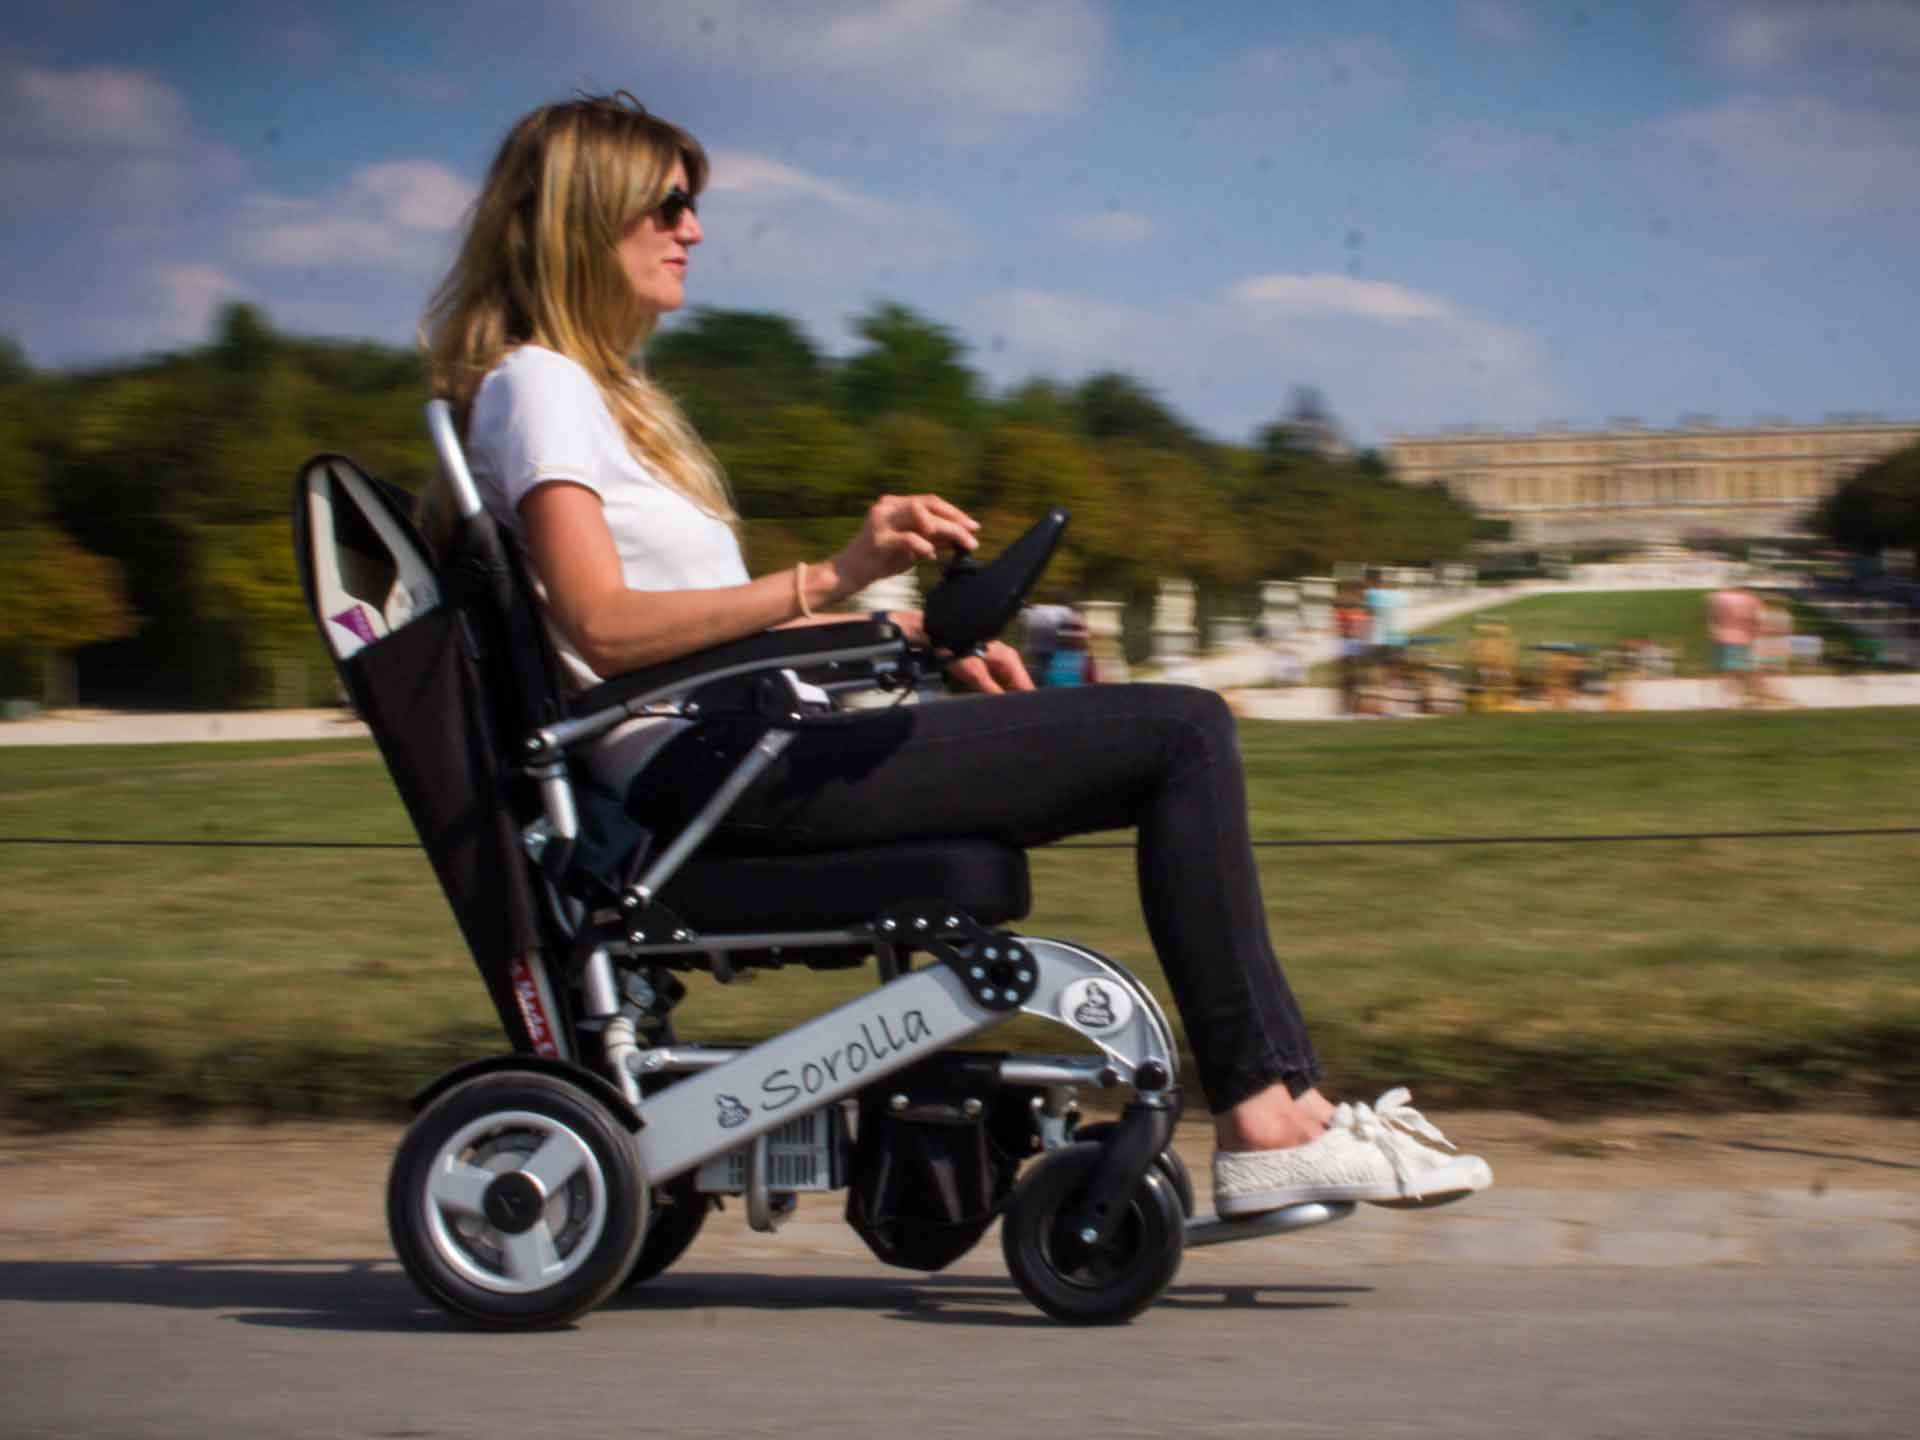 Rent an electric wheelchair for the handicapped - tourism and visiting France